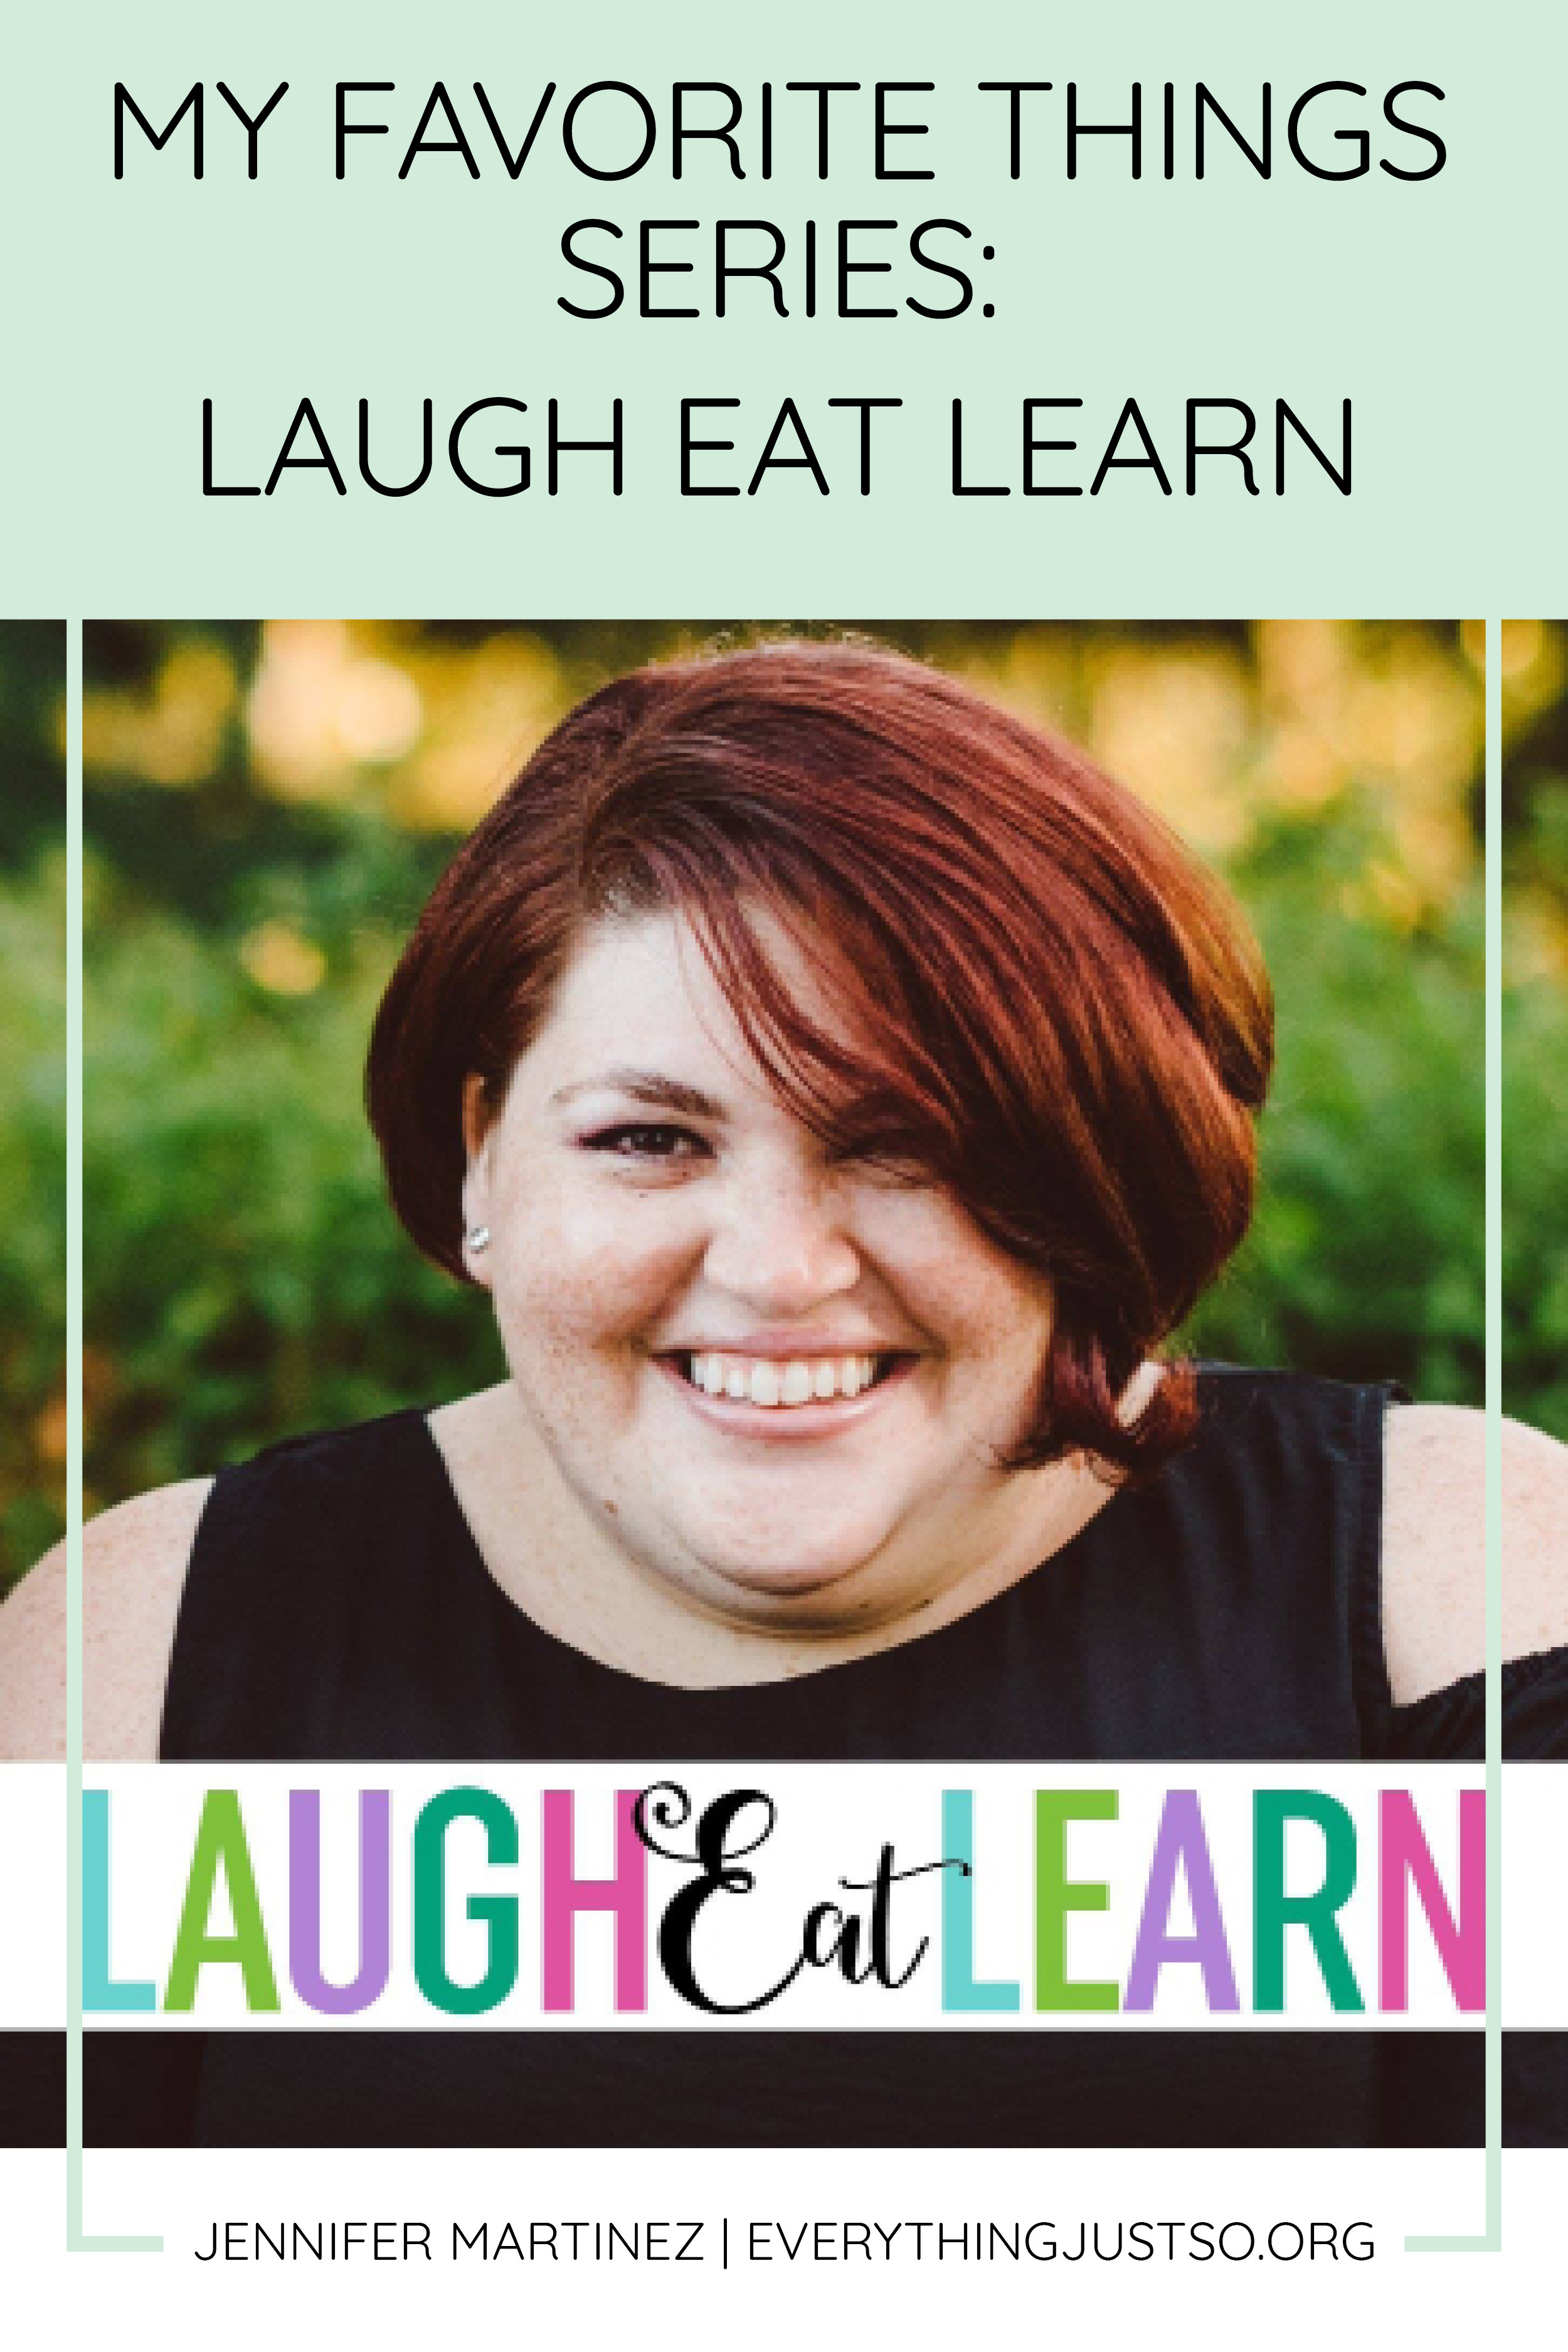 My Favorite Affordable Designer for Teacherpreneuers | Meet Alexis of Laugh Eat Learn. She helps teacherpreneuers design their storefronts, blogs, and websites. Part of my Teacher Appreciation Week Series on My Favorite Things. Win some of my favorite teacher things including teaching resources for your classroom. | everythingjustso.org #upperelementary #teacherwebsite #laugheatlearn